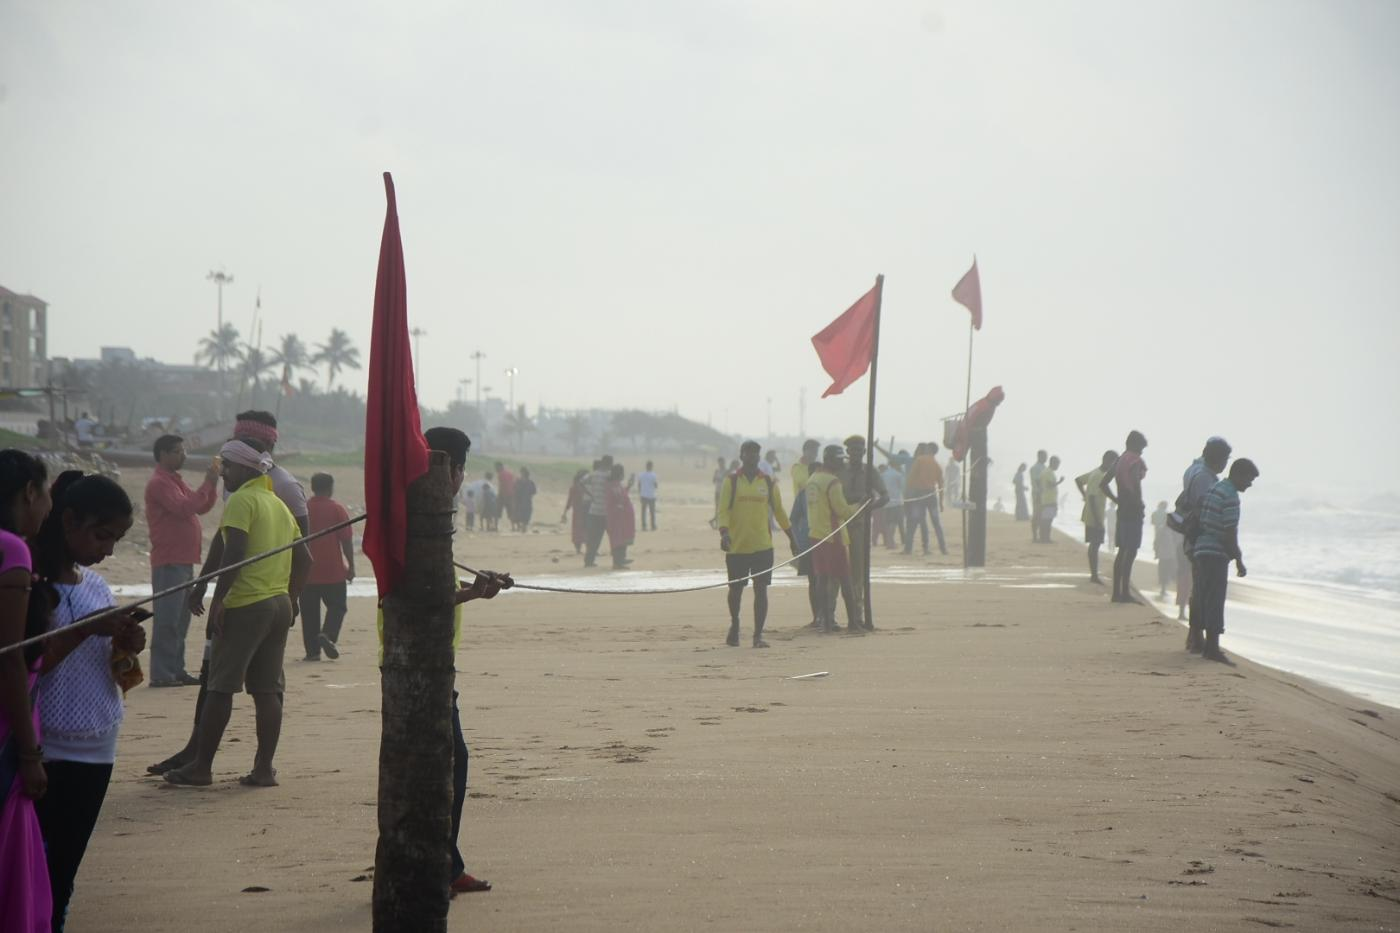 "Puri: Red flags and ropes being placed at the banks of the Puri beach as precautionary measures to keep tourists away from the beach in the wake of severe cyclonic storm 'Fani' in Odisha's Puri on May 2, 2019. The cyclonic storm is likely to hit Odisha coast between Gopalpur and Chandbali on May 3 evening. According to the India Meteorological Department, cyclone Fani, which has turned into an ""extreme severe cyclonic"" storm, is located around 225 kms south-southeast of Visakhapatnam and around 430 kms south-southwest of Puri. (Photo: IANS) by ."